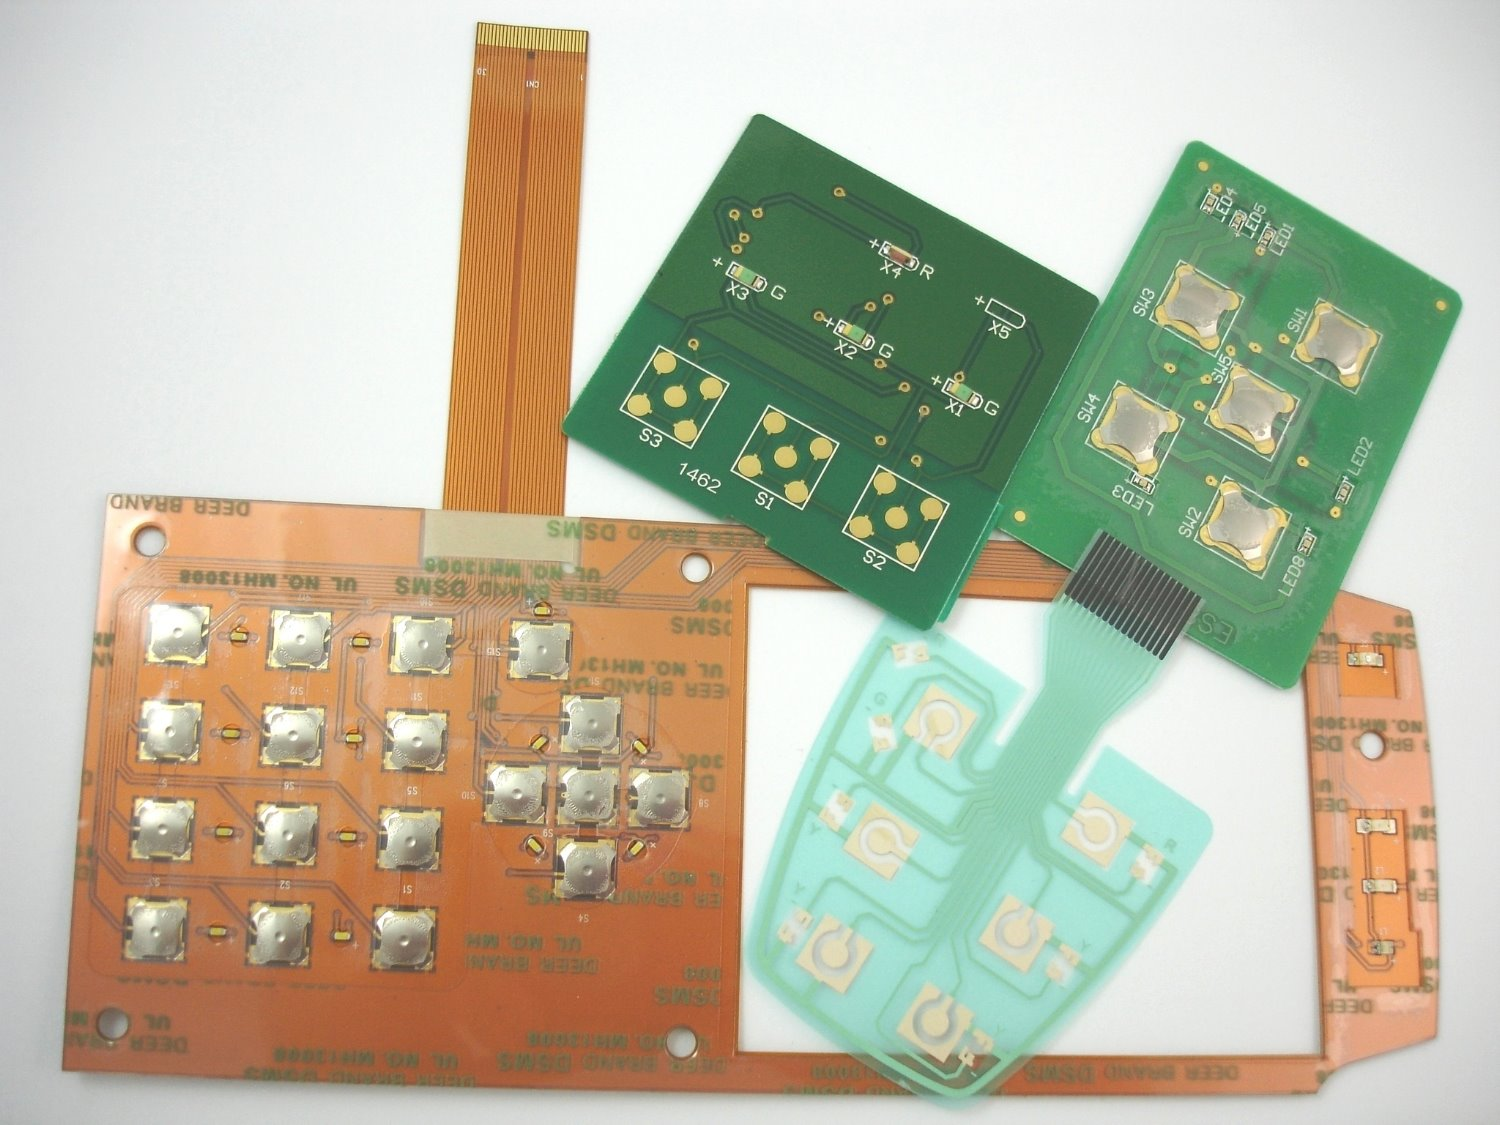 Taiwan The Manufacturer Of Flexible Circuit Board Kingley Printed Fpc Is A Type Made Key Features